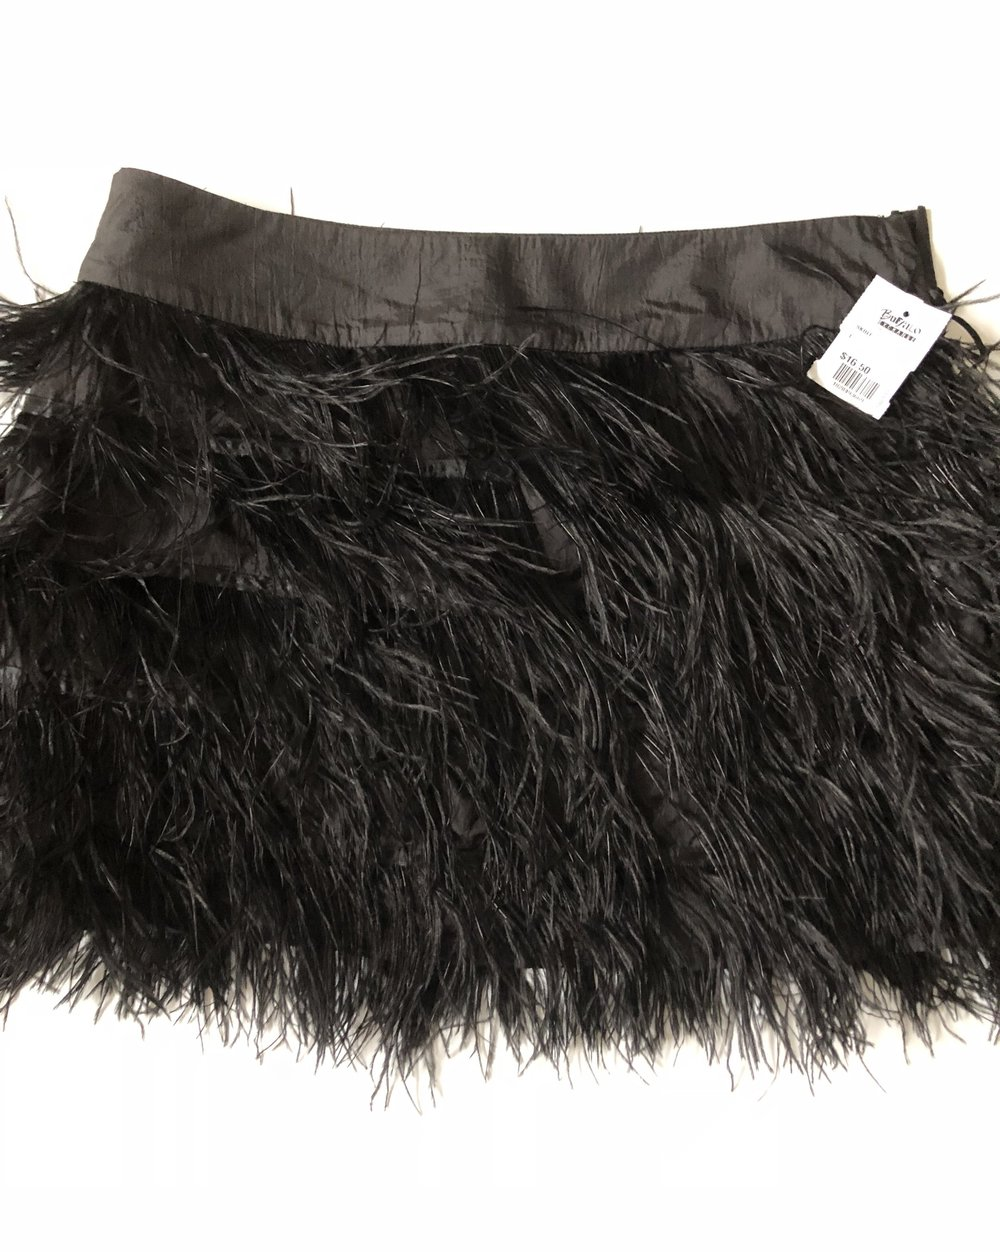 Fringe mini skirt $16.50, size large. It fits perfectly!